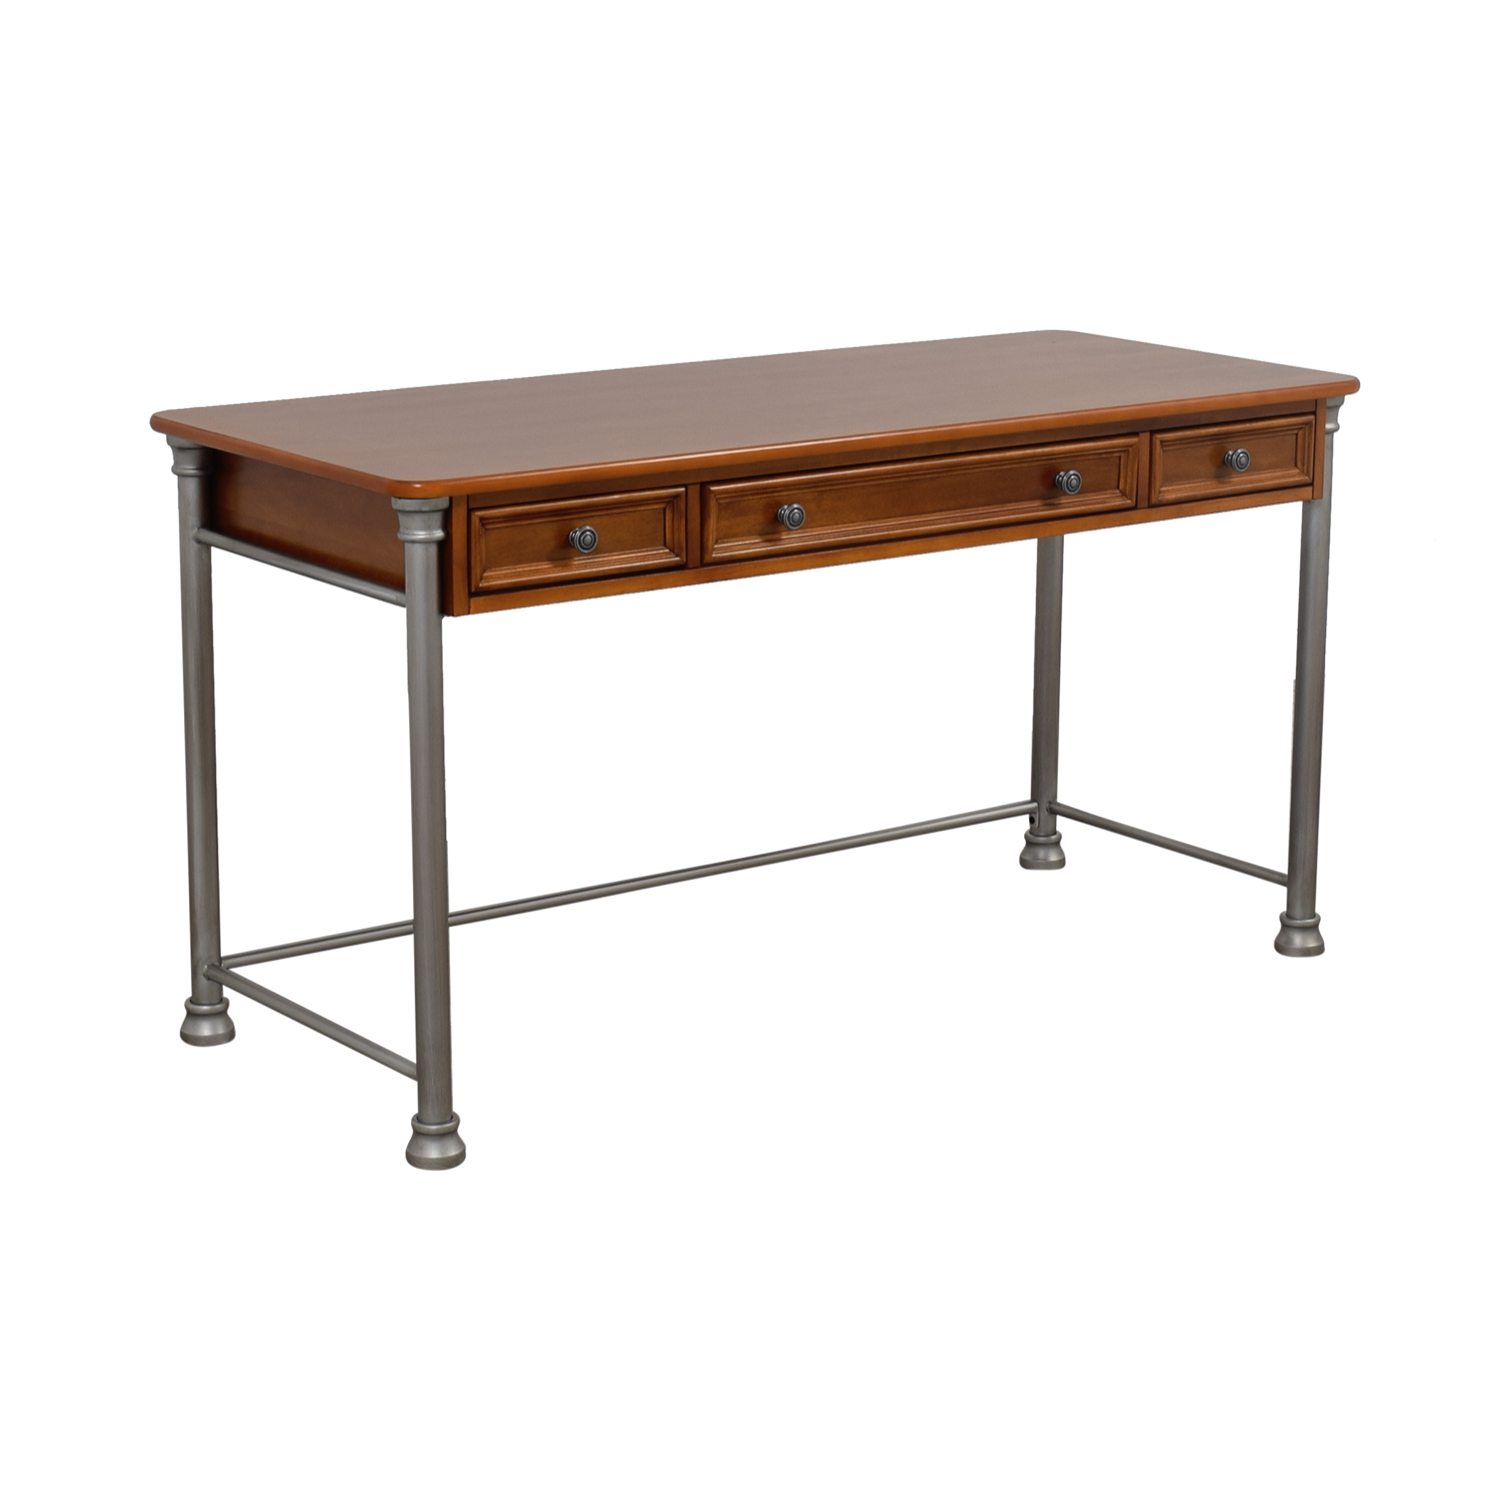 Homestyle Homestyle Two Drawer Desk with Keyboard Drawer coupon